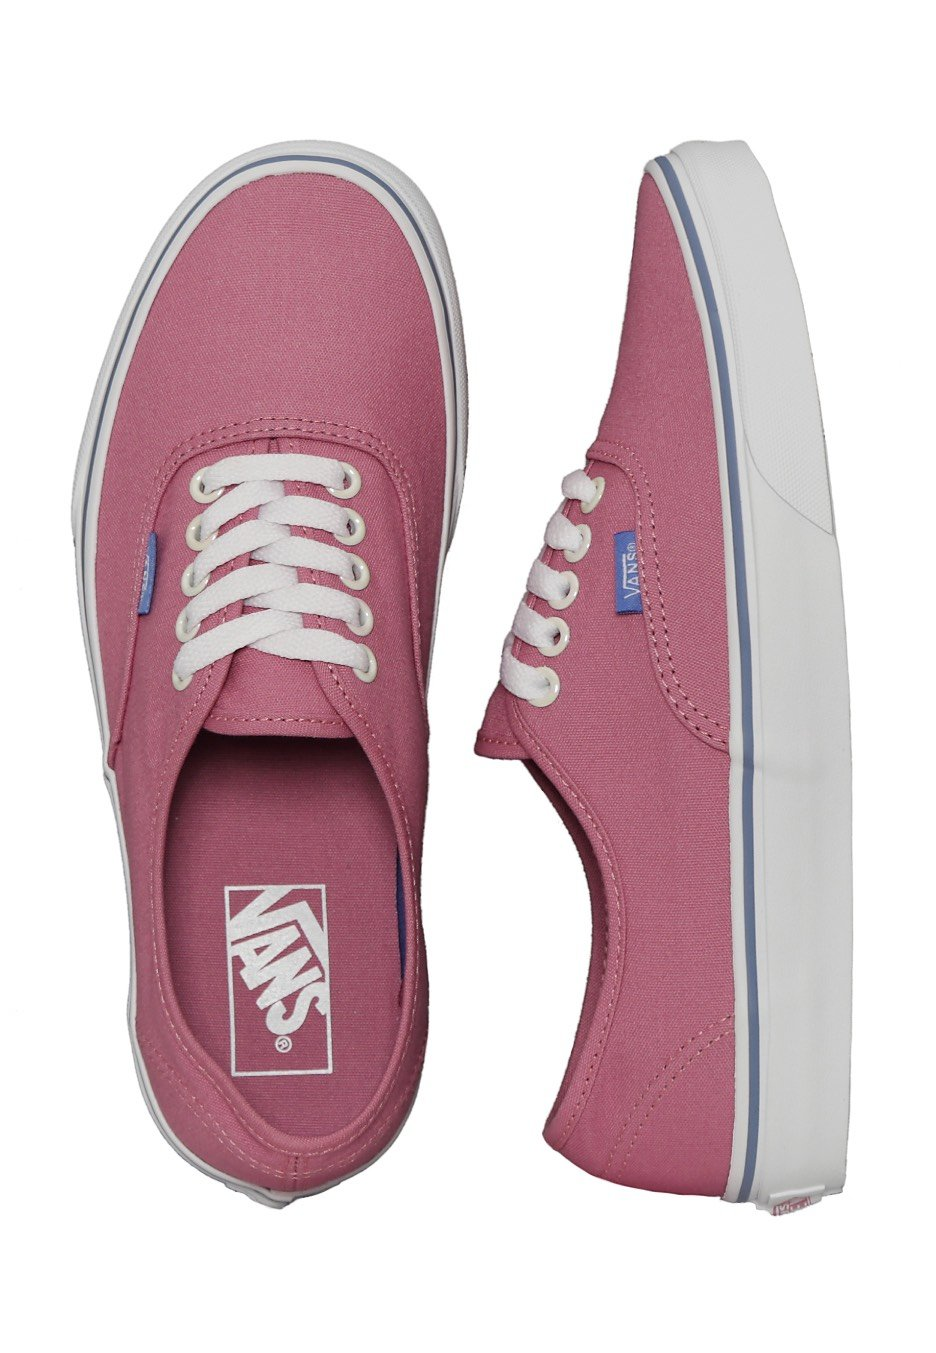 f64f8d6065 Vans - Authentic Iridescent Eyelets Wild Rose - Girl Shoes - Impericon.com  UK